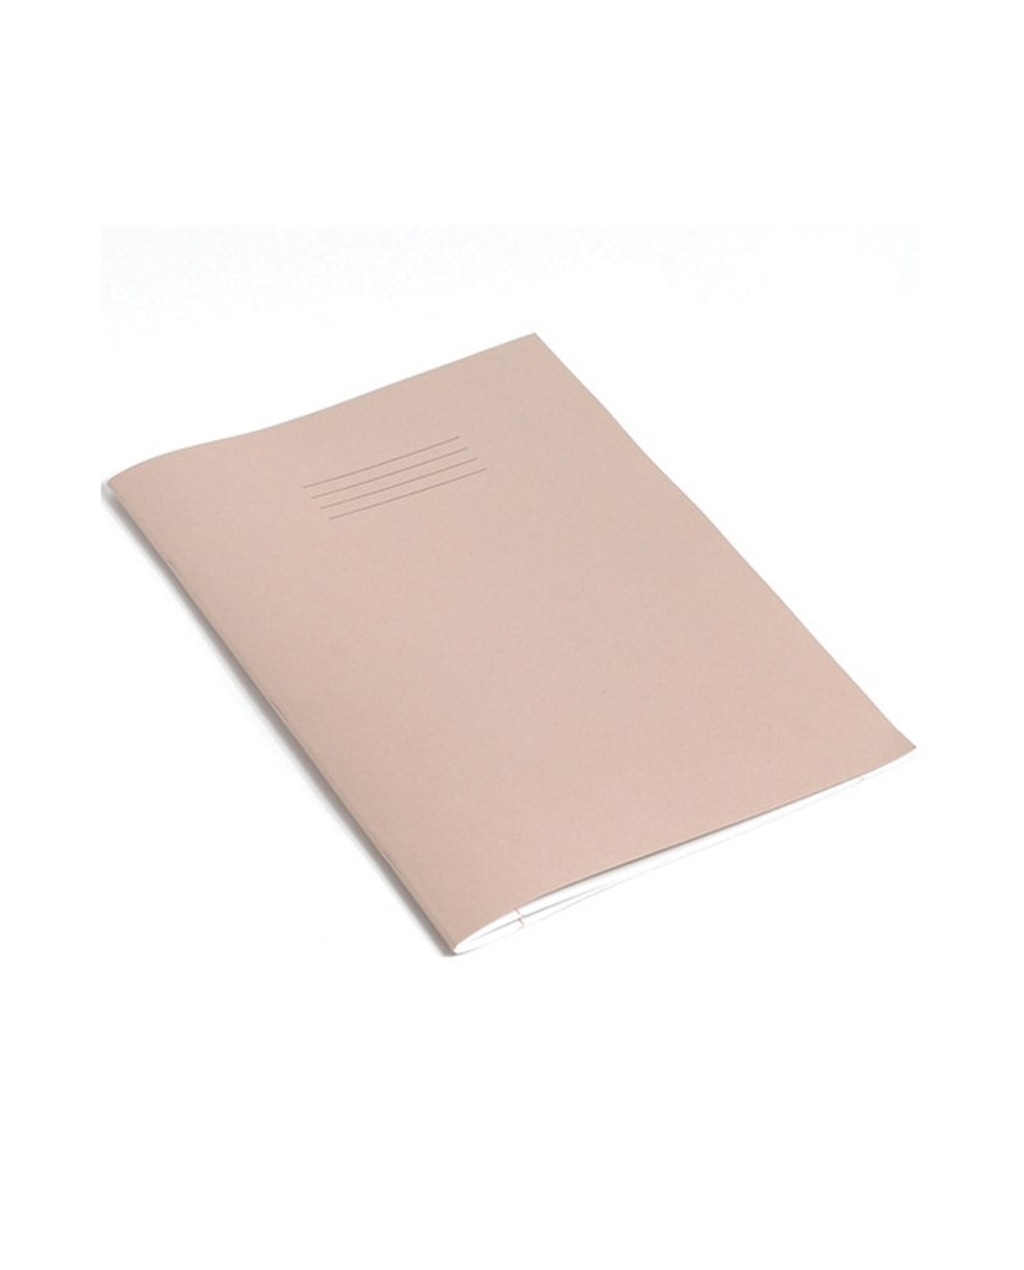 Exercise Book A4 (297 x 210mm) Buff Cover Plain - No Ruling 64 Pages